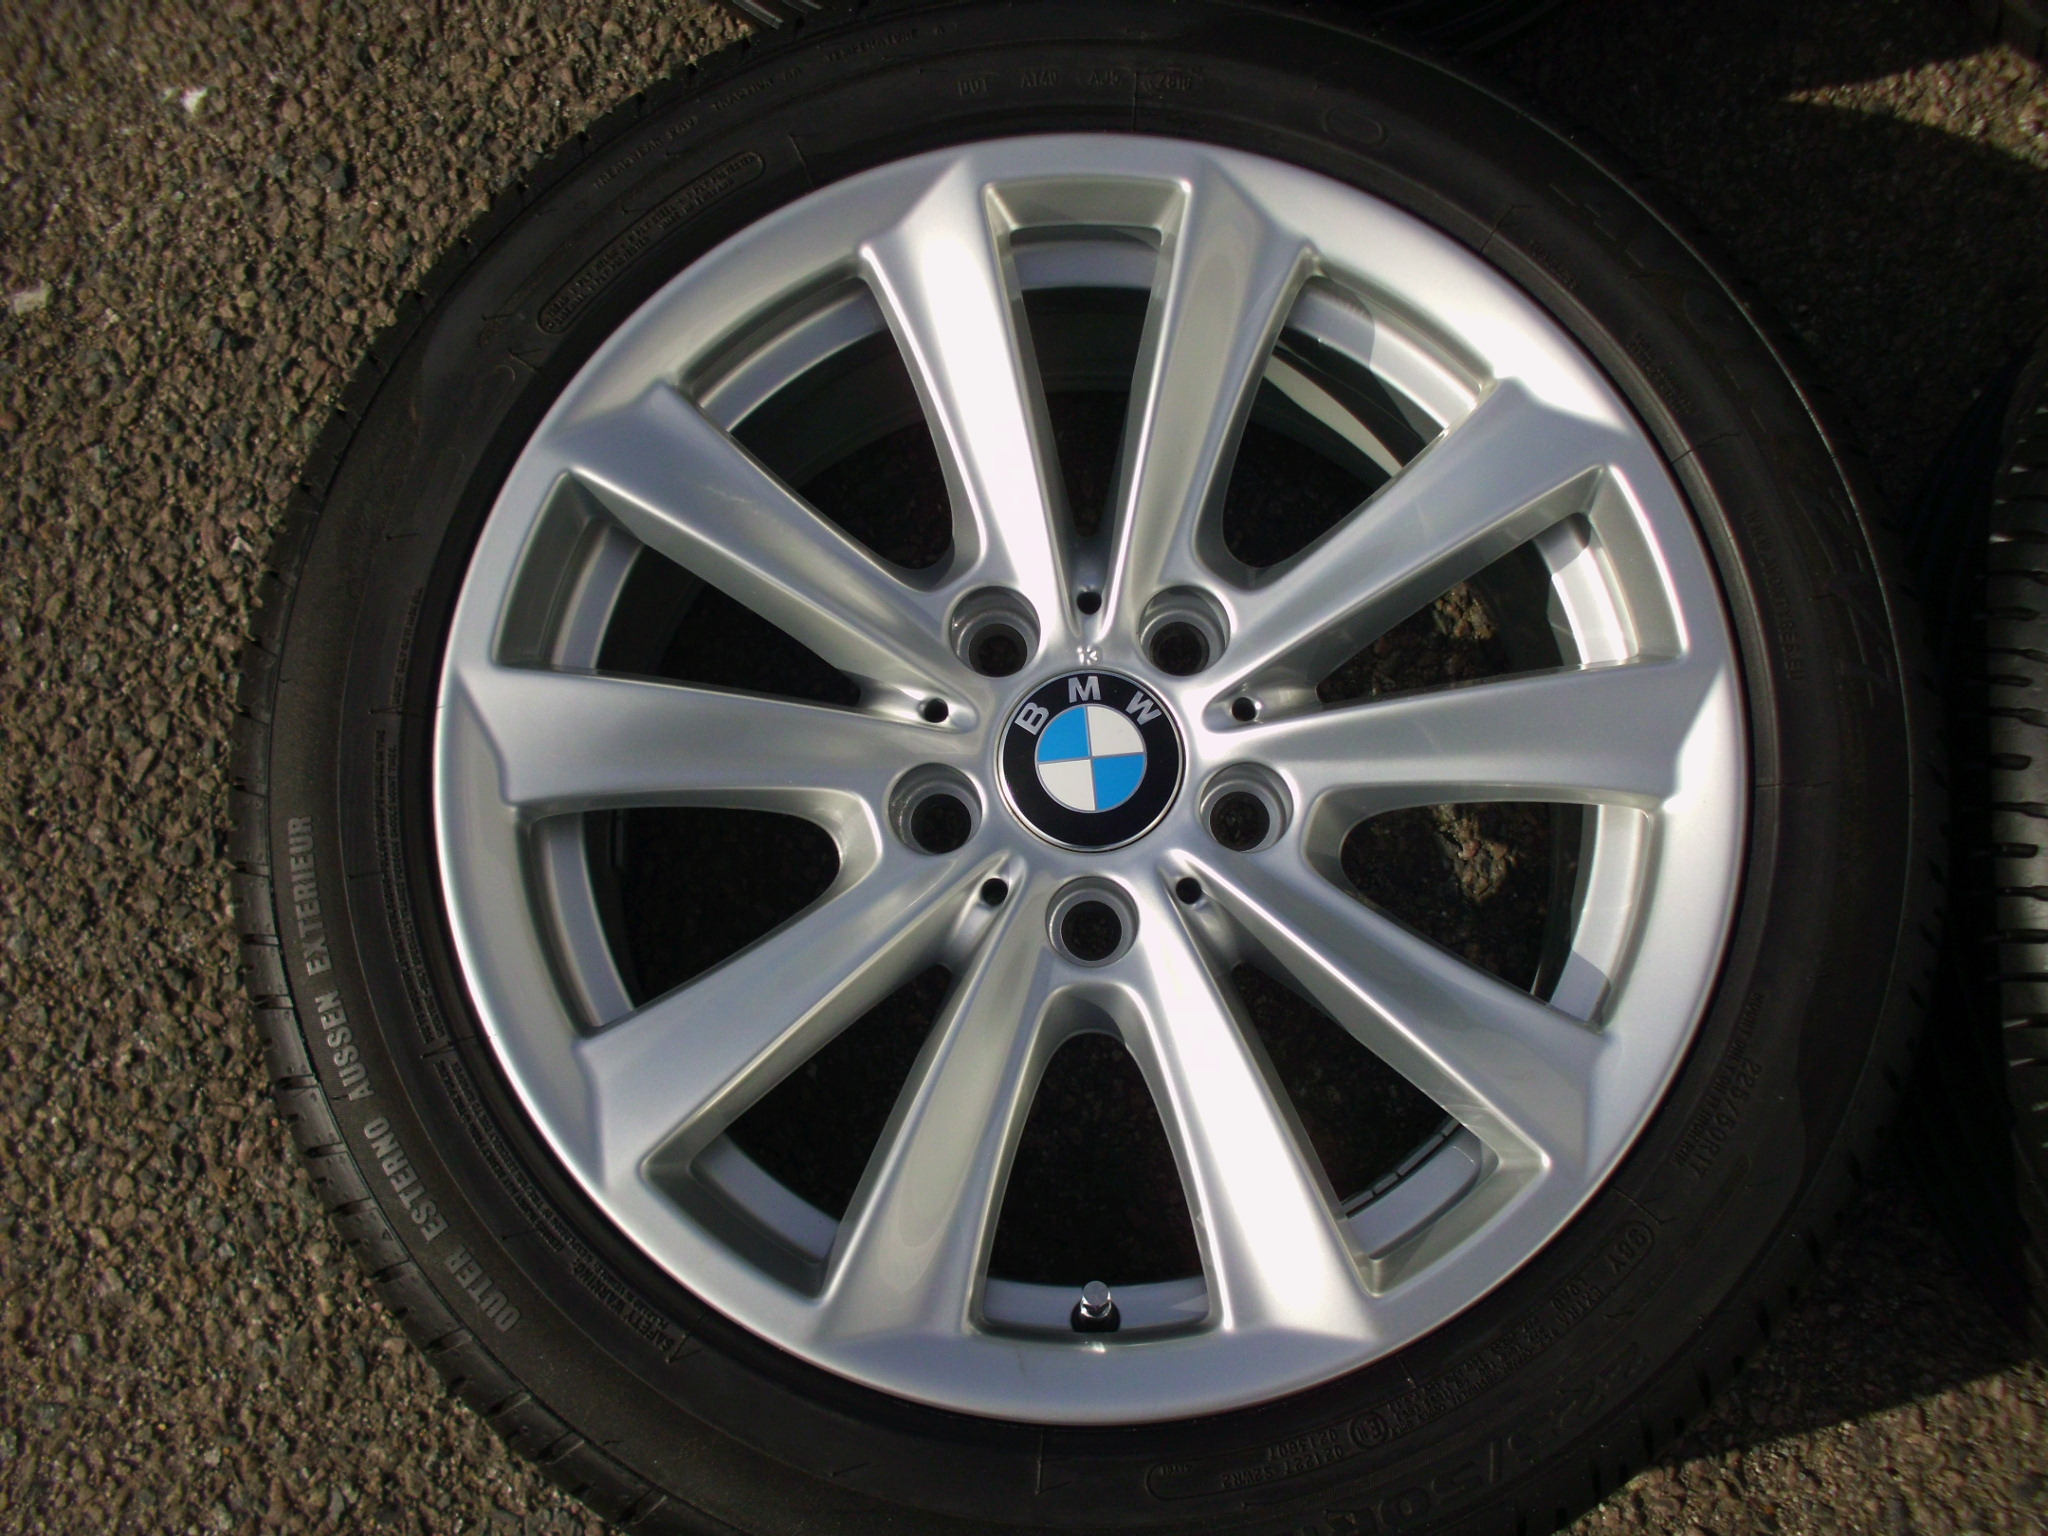 "USED 17"" GENUINE BMW STYLE 236 V SPOKE ALLOY WHEELS, FULLY REFURBED INC VG NON RUNFLAT TYRES"